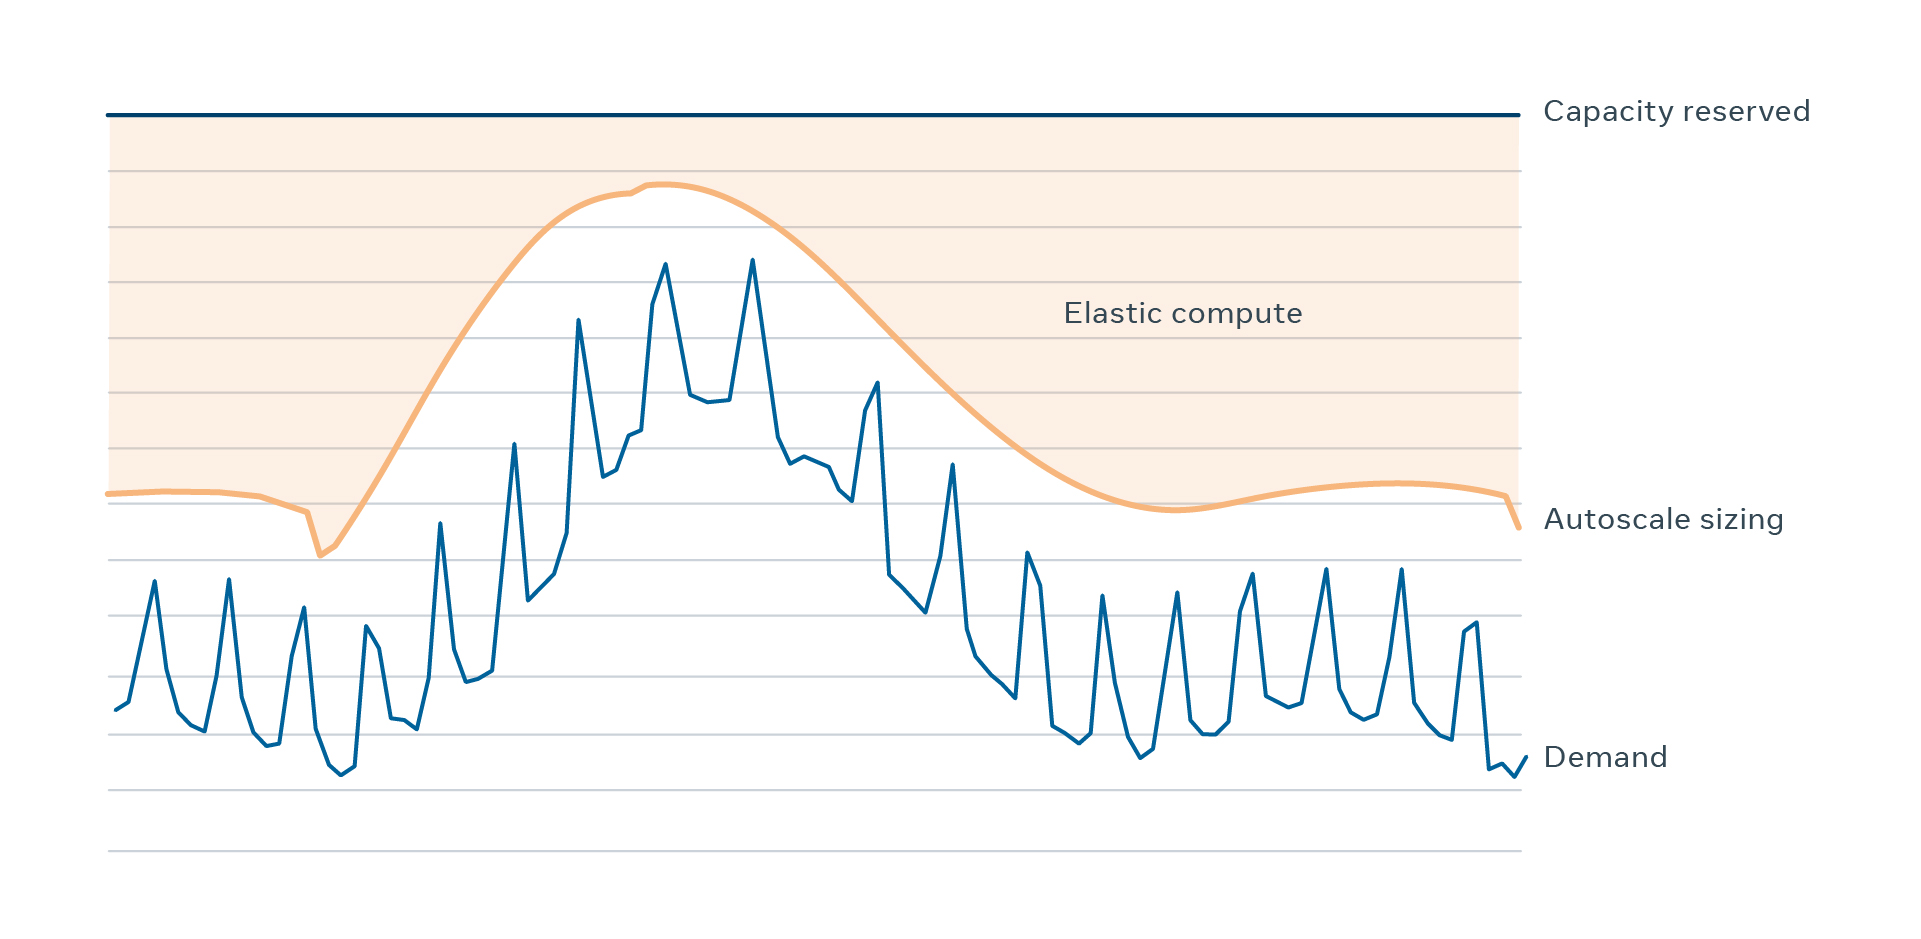 The actual demand for the web tier (blue line), the dynamic size of the web tier based on autoscale-predicted disaster demand (orange line), and the total capacity reserved for the web tier (dark blue). The count of servers calculated as difference between the dynamic size and the reserved capacity (orange area) is the capacity that goes into the elastic compute pool and can be used by other workloads until the web tier needs them back.